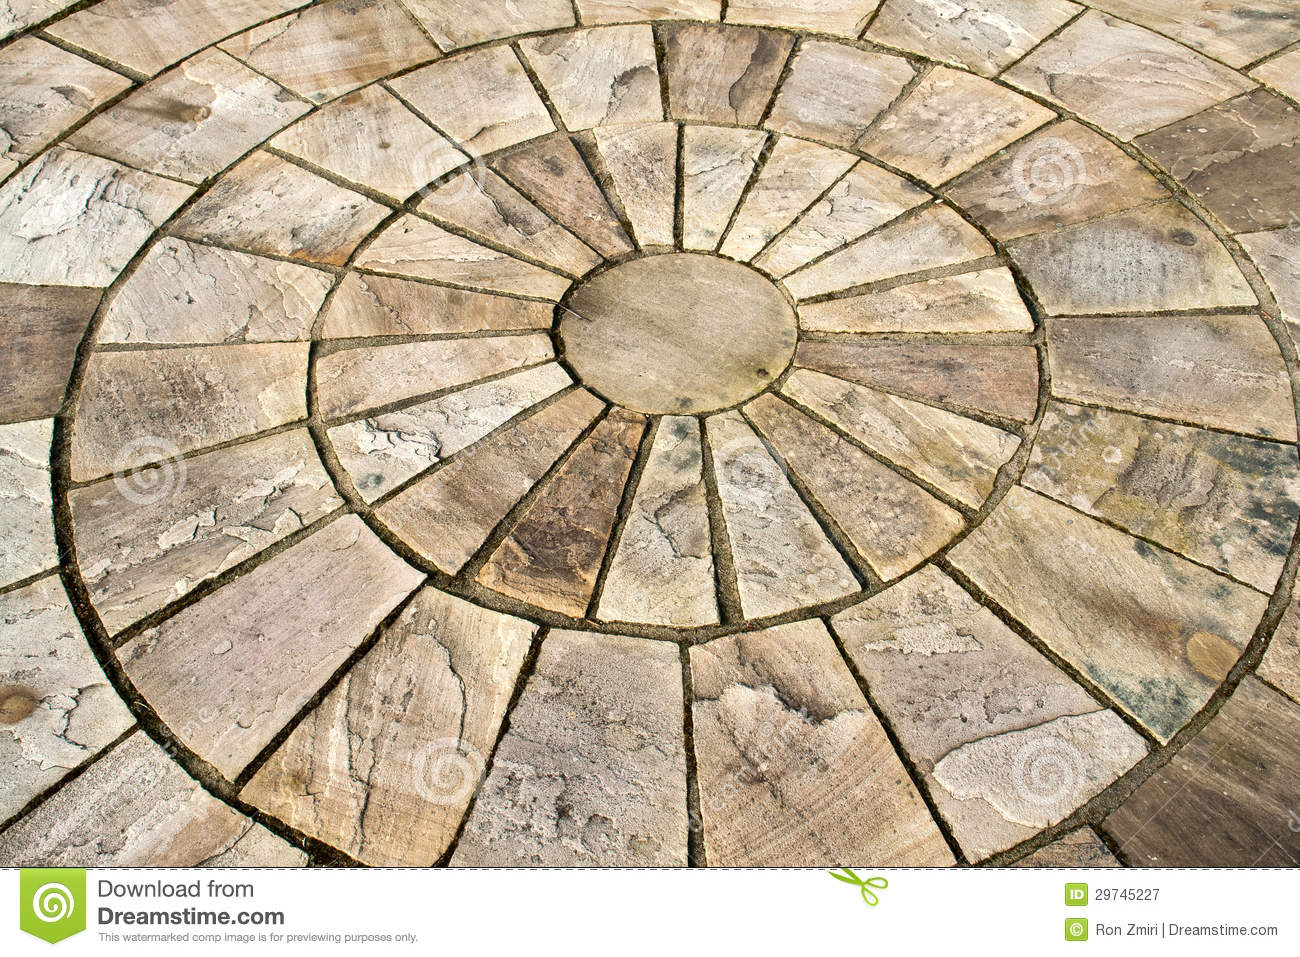 Display of stone floor tiles circle royalty free stock for Garden floor design